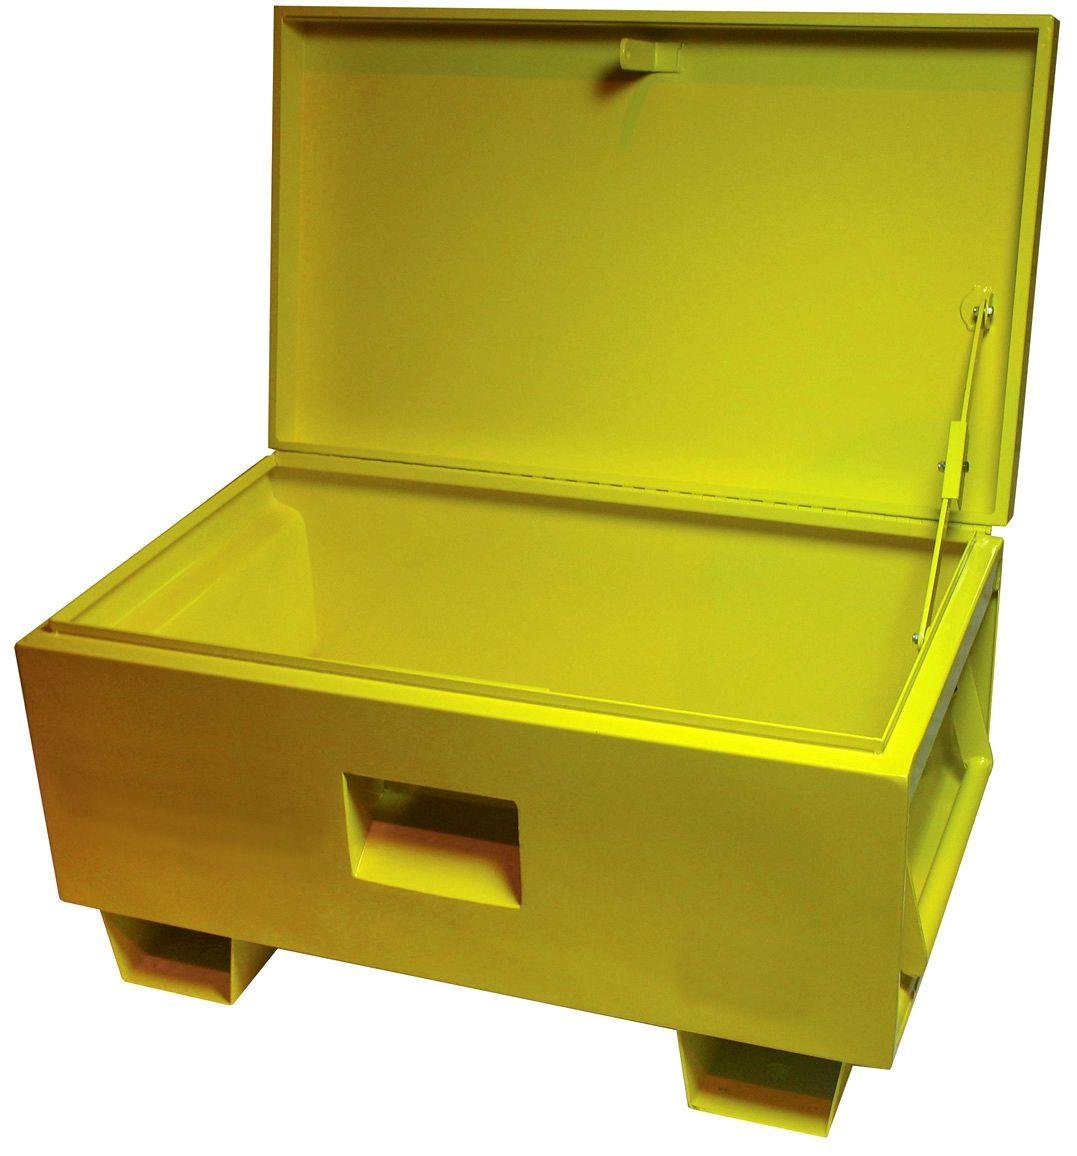 Site or Van Storage Box - 445 x 812cm lowest price